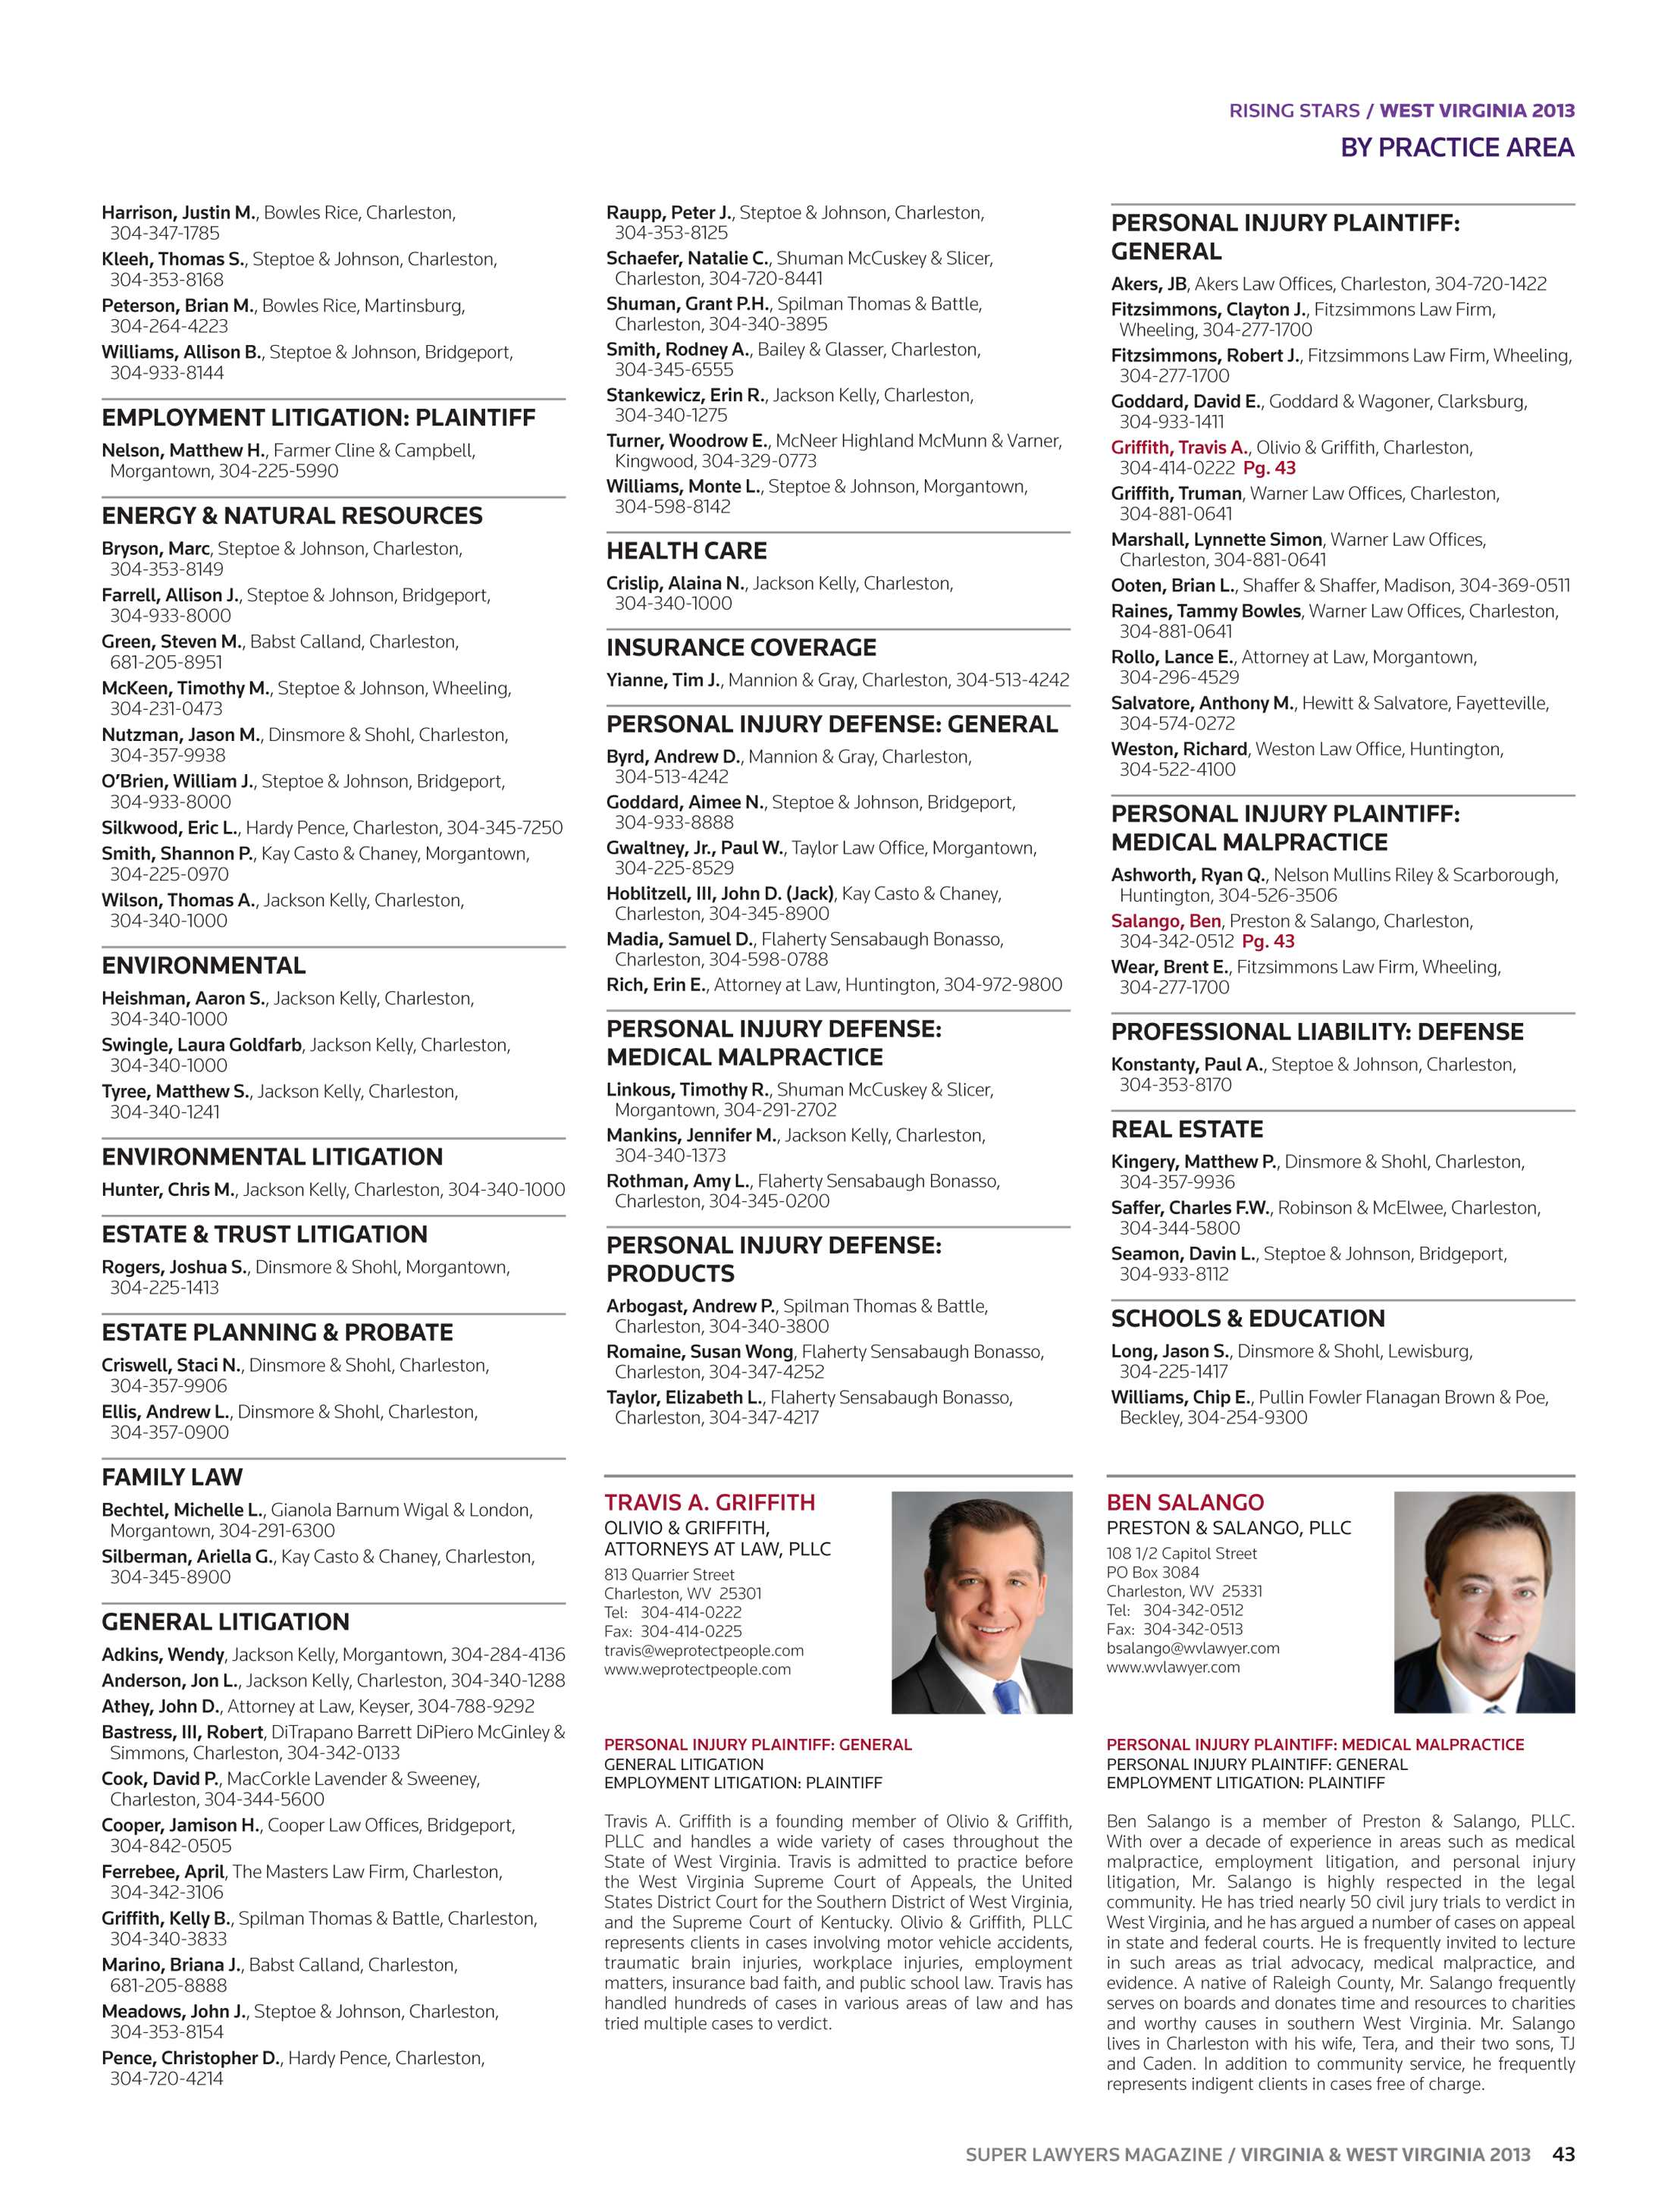 Super Lawyers - Virginia and West Virginia 2013 - page 43